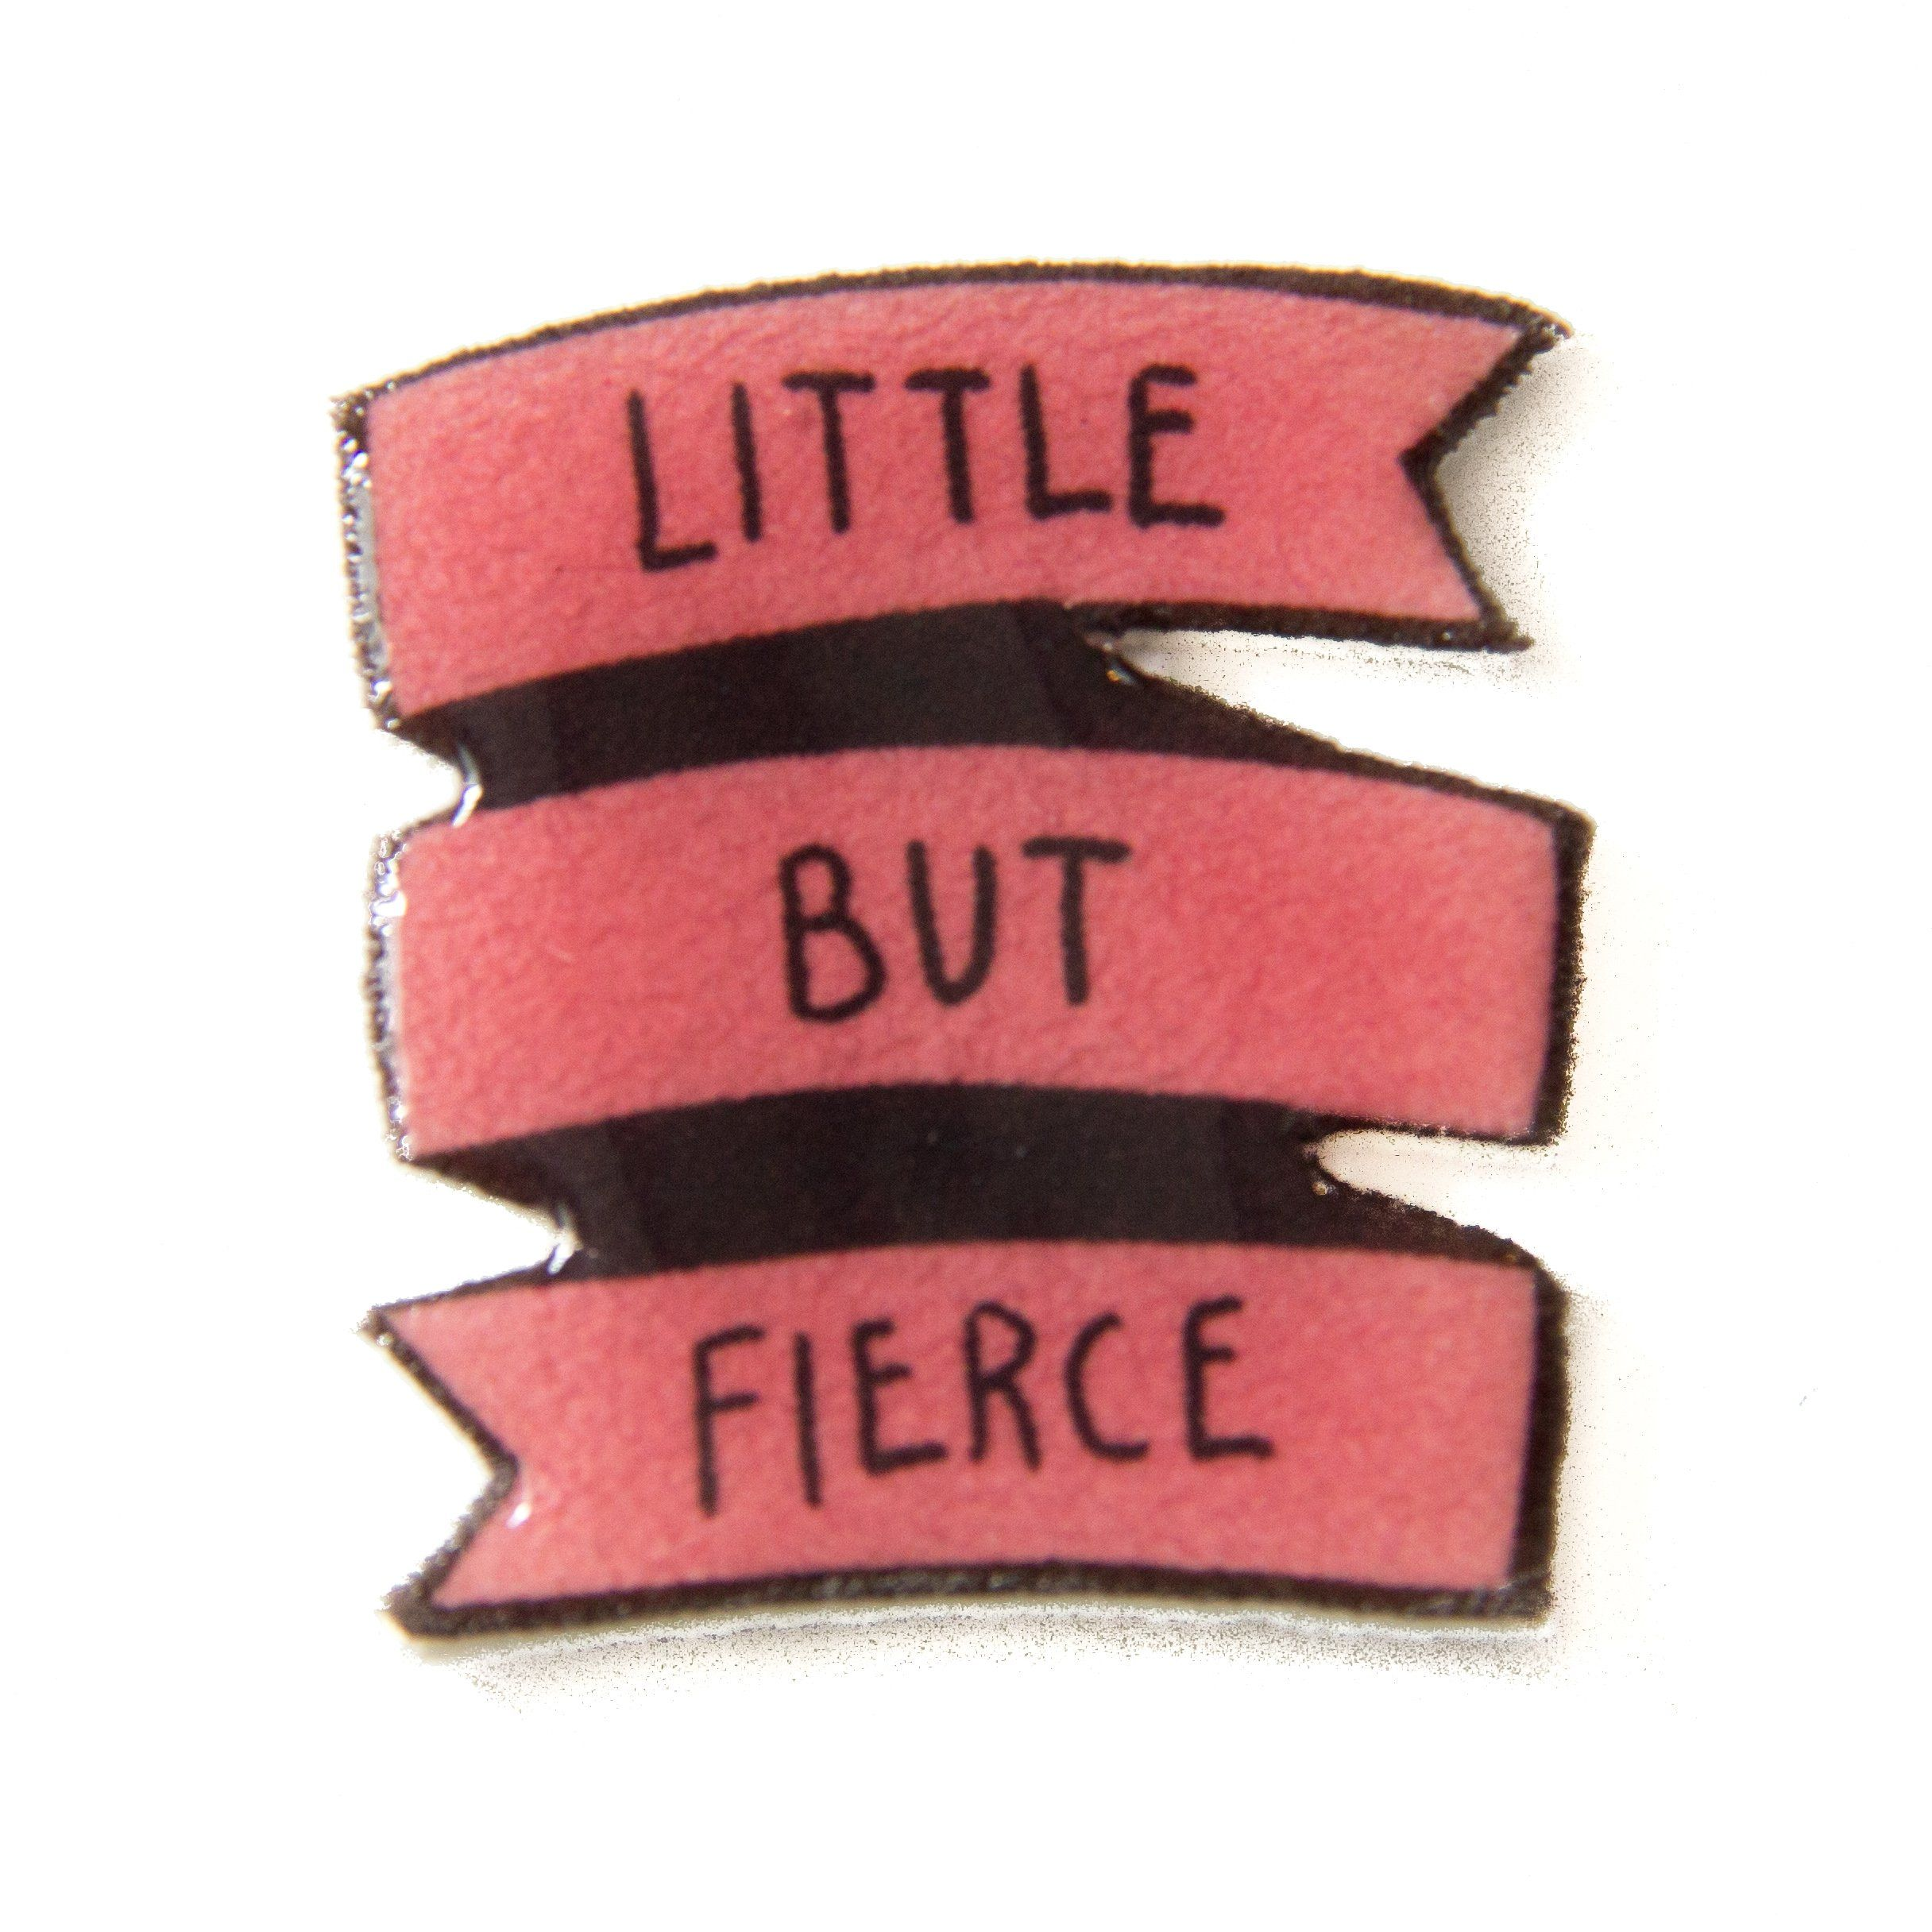 Little But Fierce Pink Enamel Pin Shakespeare Quote Small Gift Banner Feminist